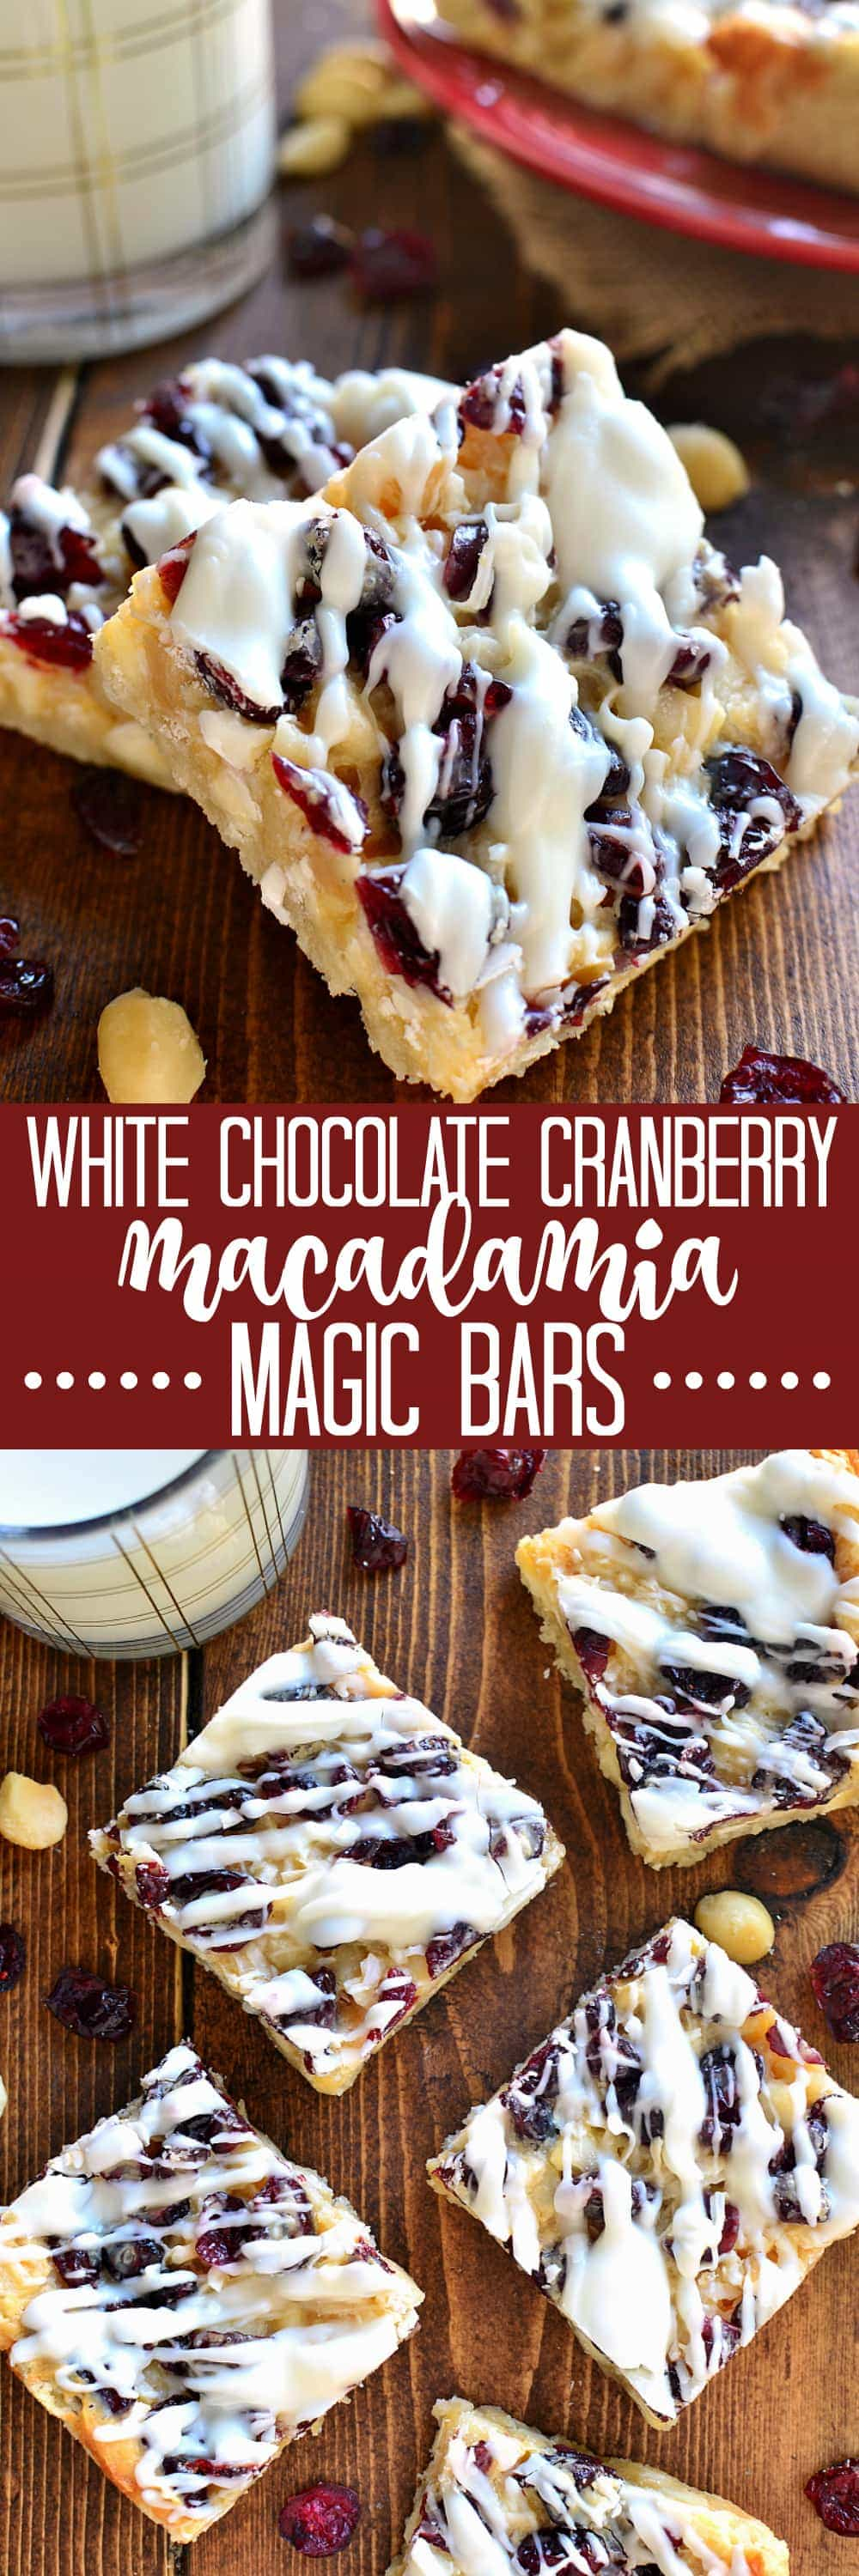 Take your Christmas treats to the next level with these White Chocolate Cranberry Macadamia Magic Bars! Made with just 6 simple ingredients and perfect for the holidays!